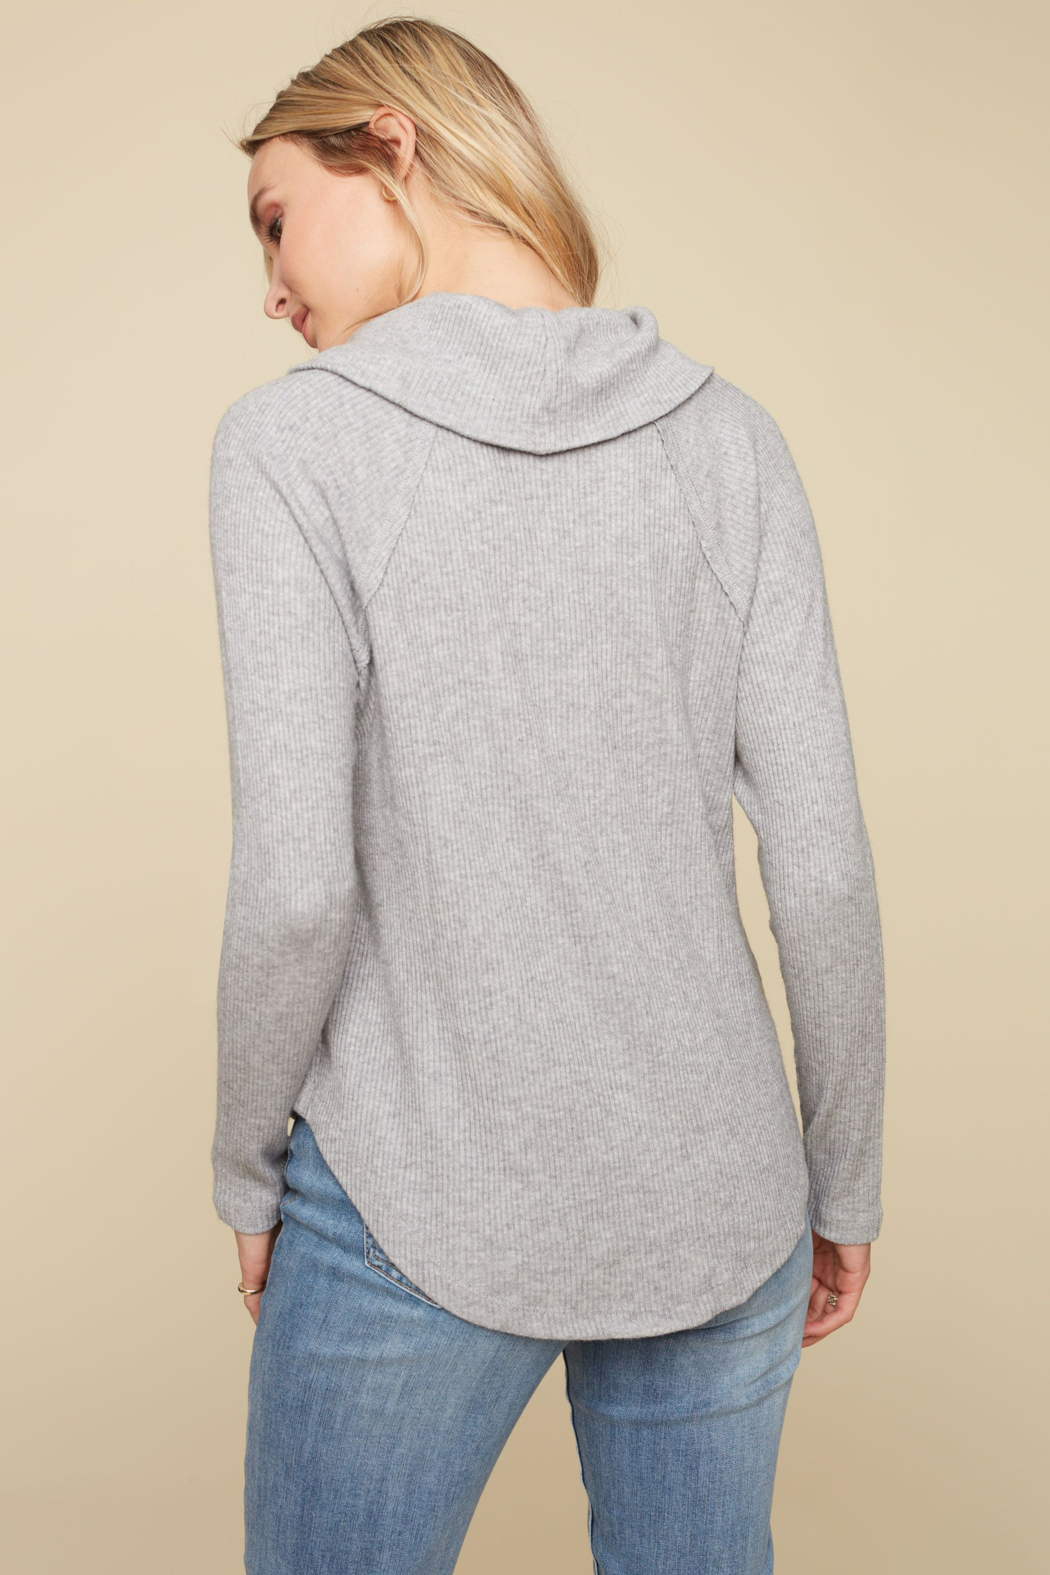 Charlie B. Ribbed Cowl Neck Top - Side Cropped Image